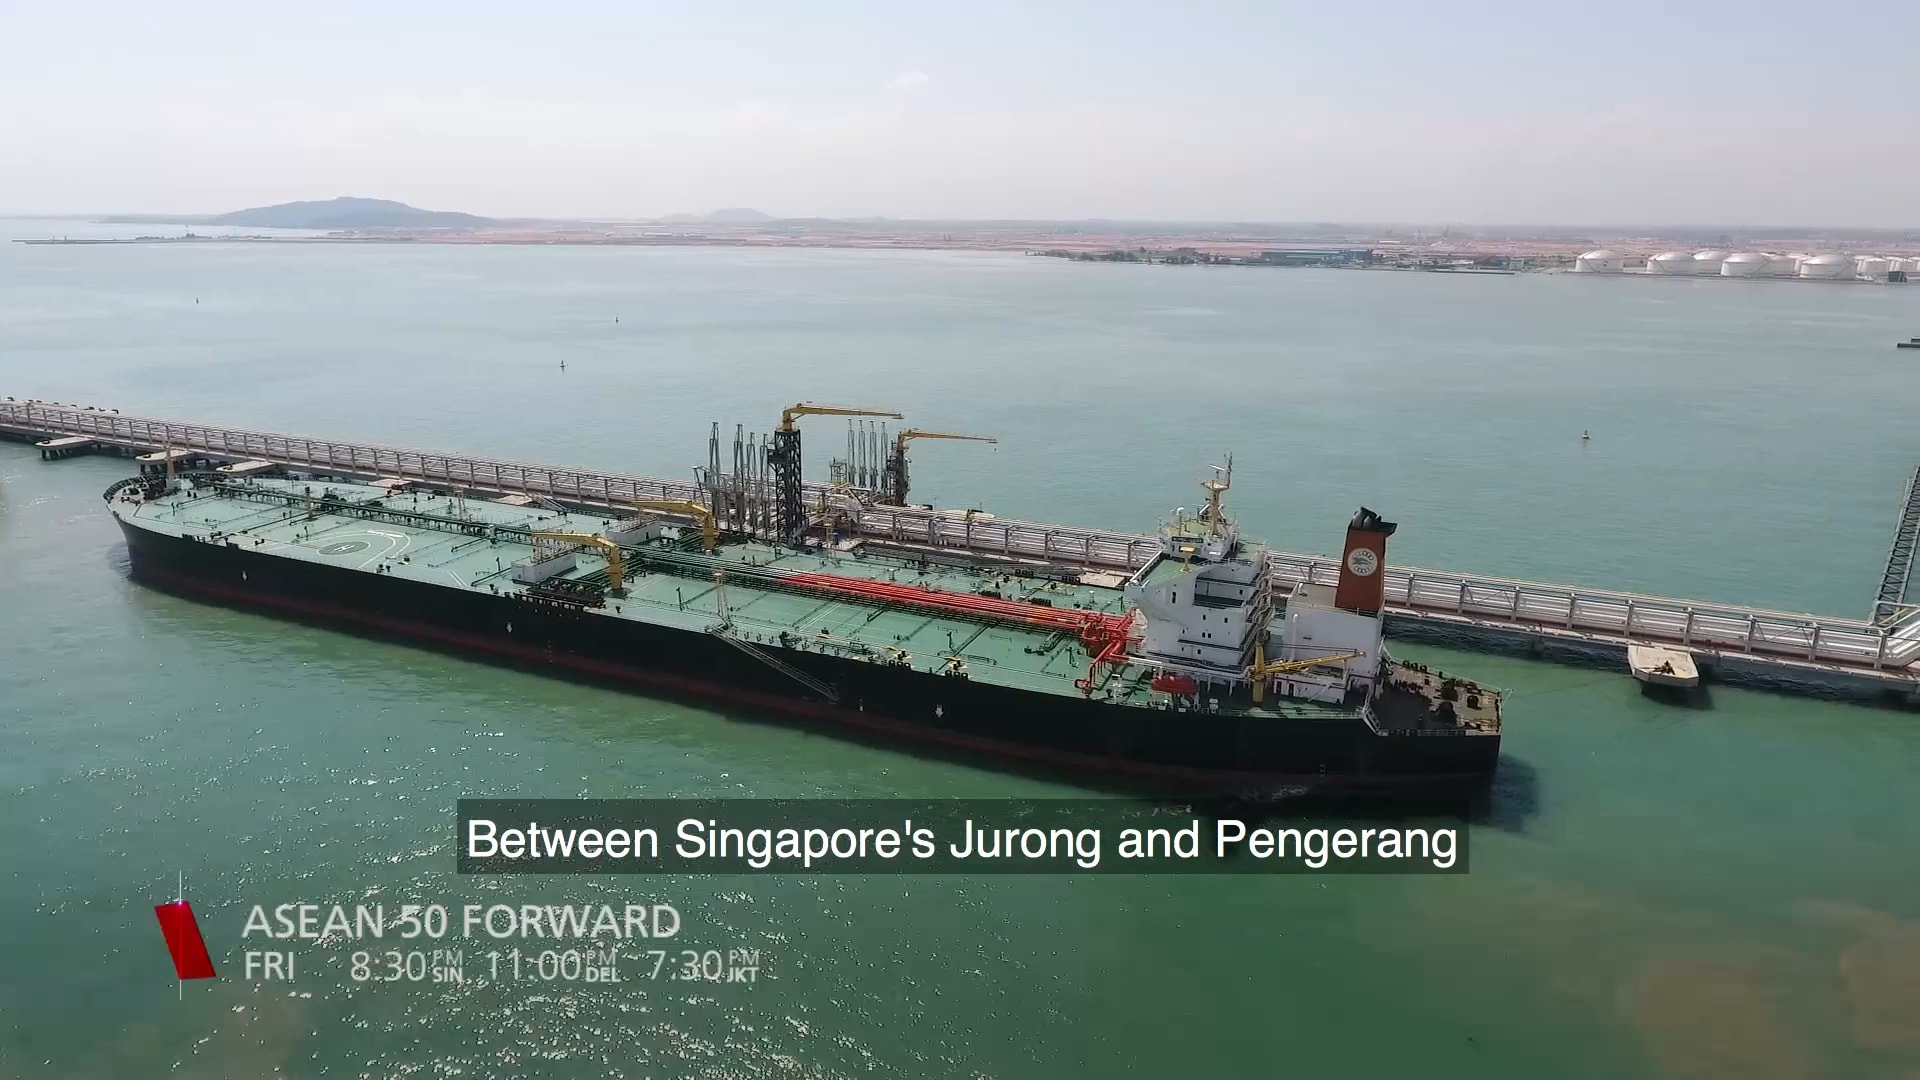 Trailer: ASEAN Free Trade, The First Major Milestone